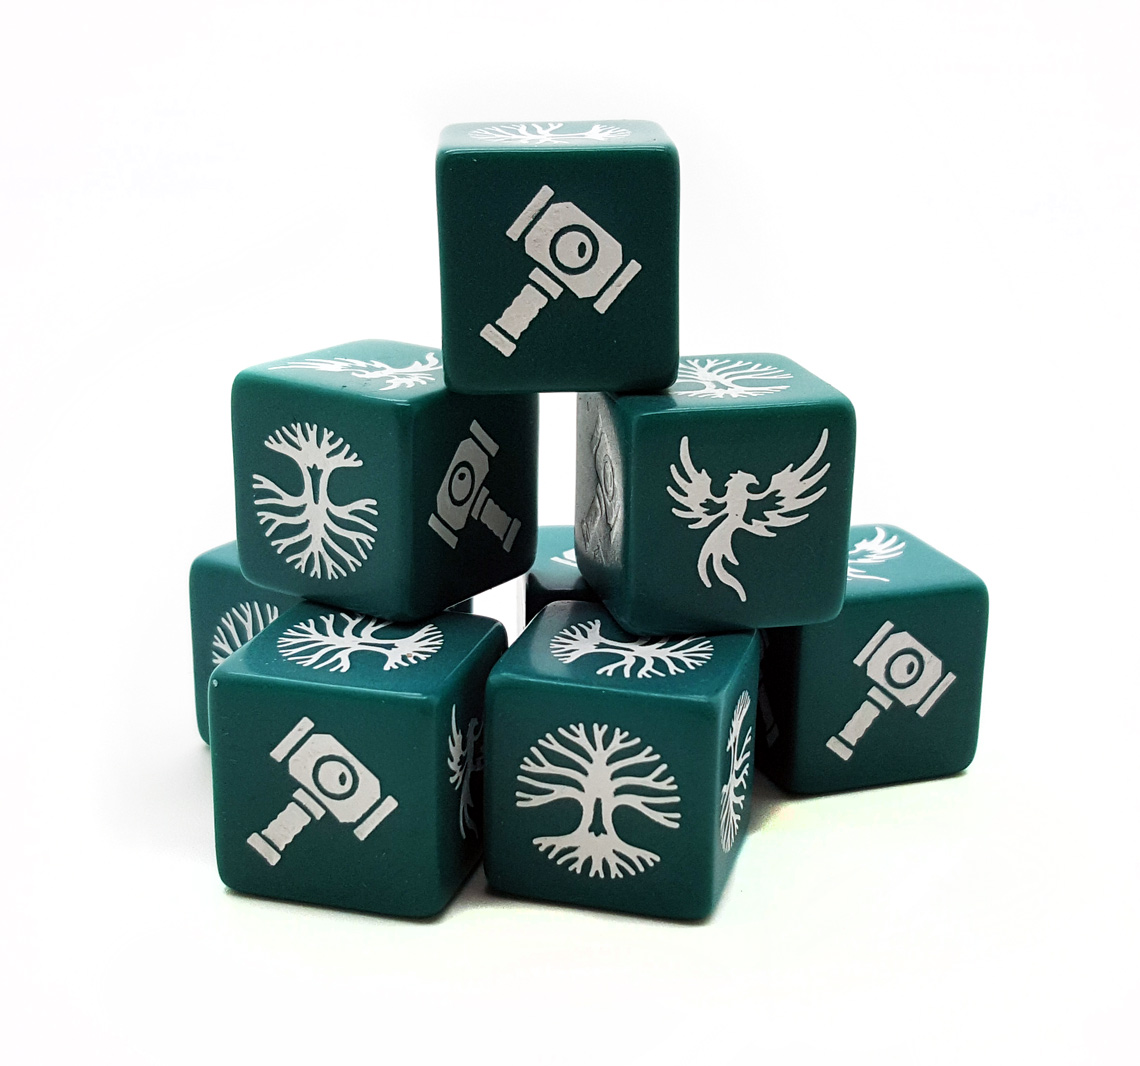 SD11 Forces of Order Dice (8)